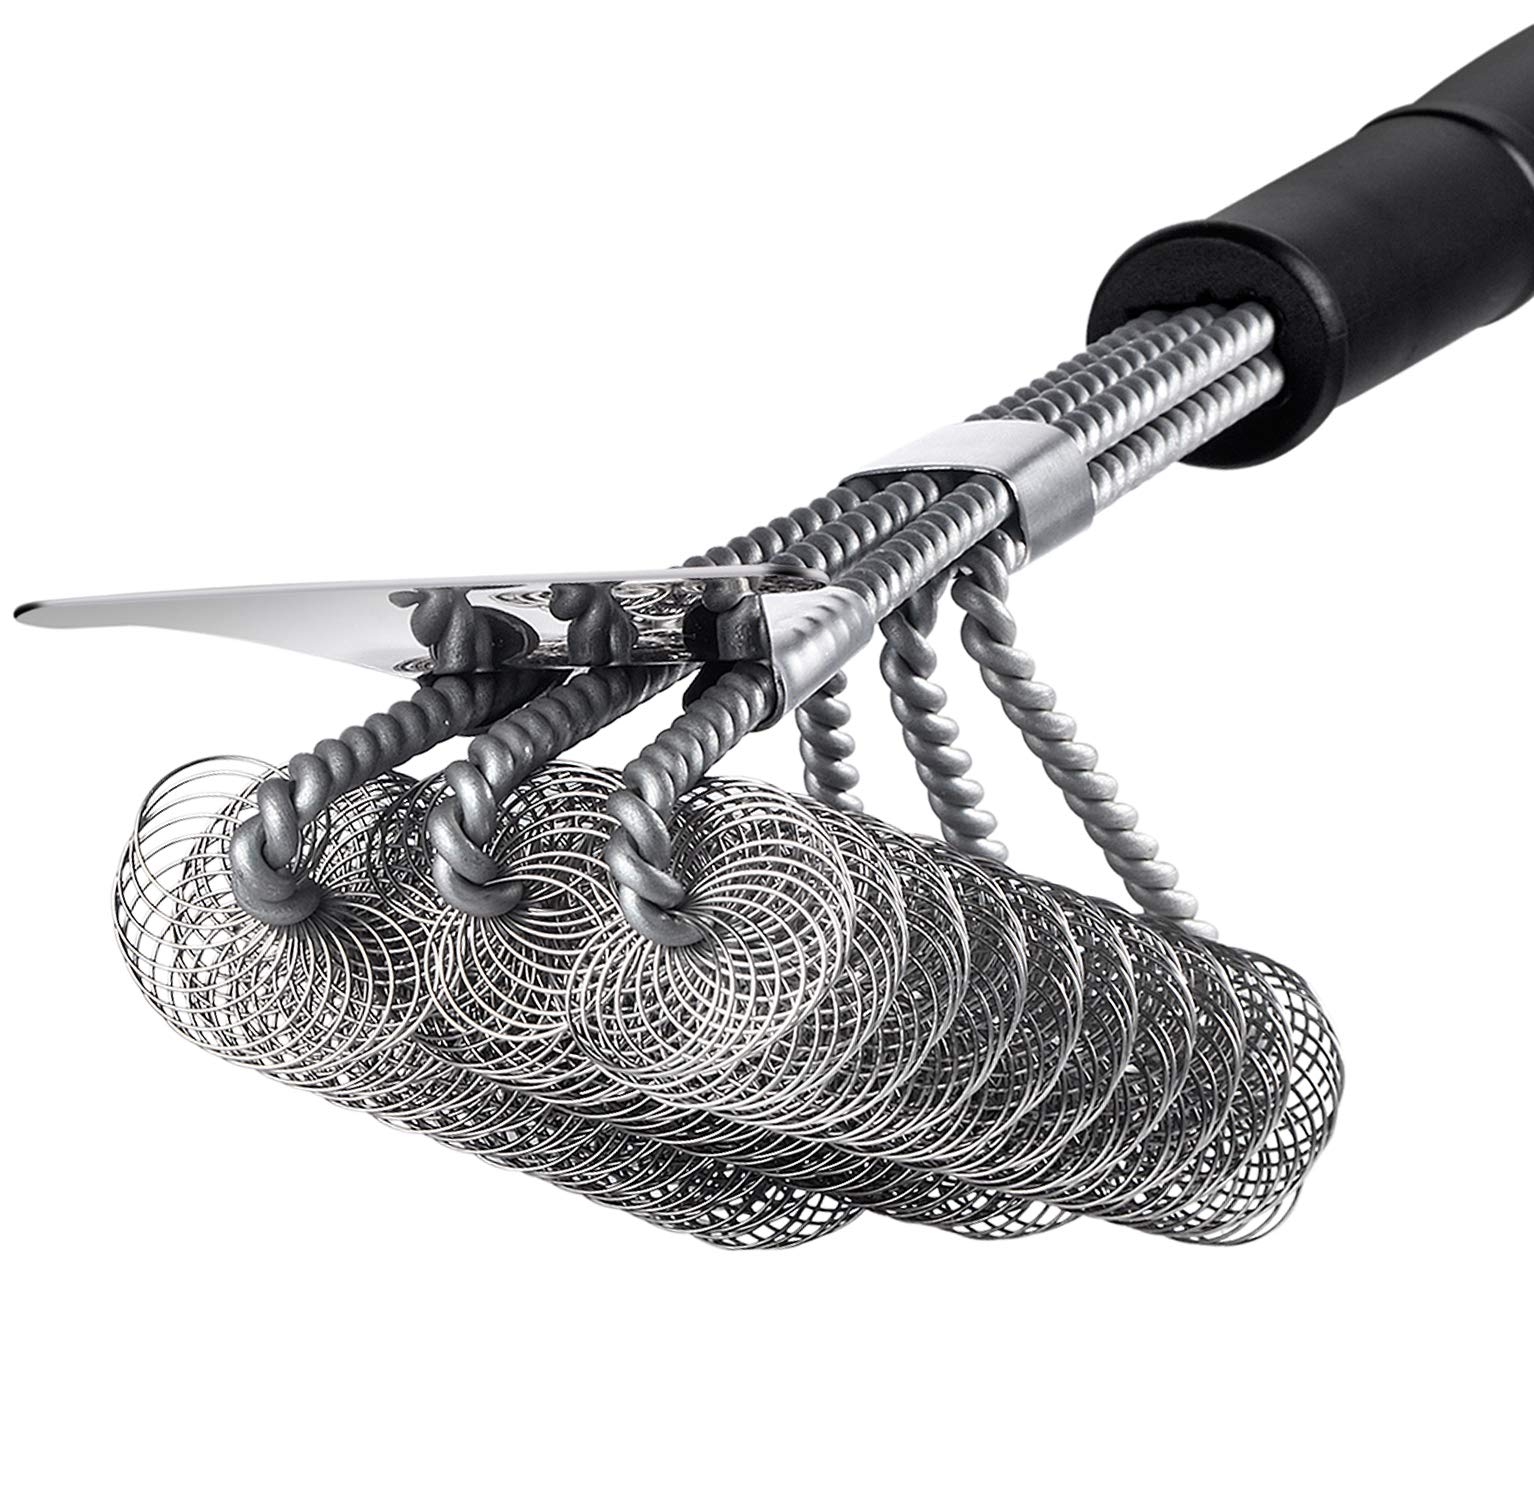 Z&Y Clean Grill Brush and Scraper, Bristle Free Barbecue Brush,Safe Premium 18 inch 100% Rust Resistant Stainless Steel BBQ Grill Cleaning Brush - Great Grill Accessories Gift